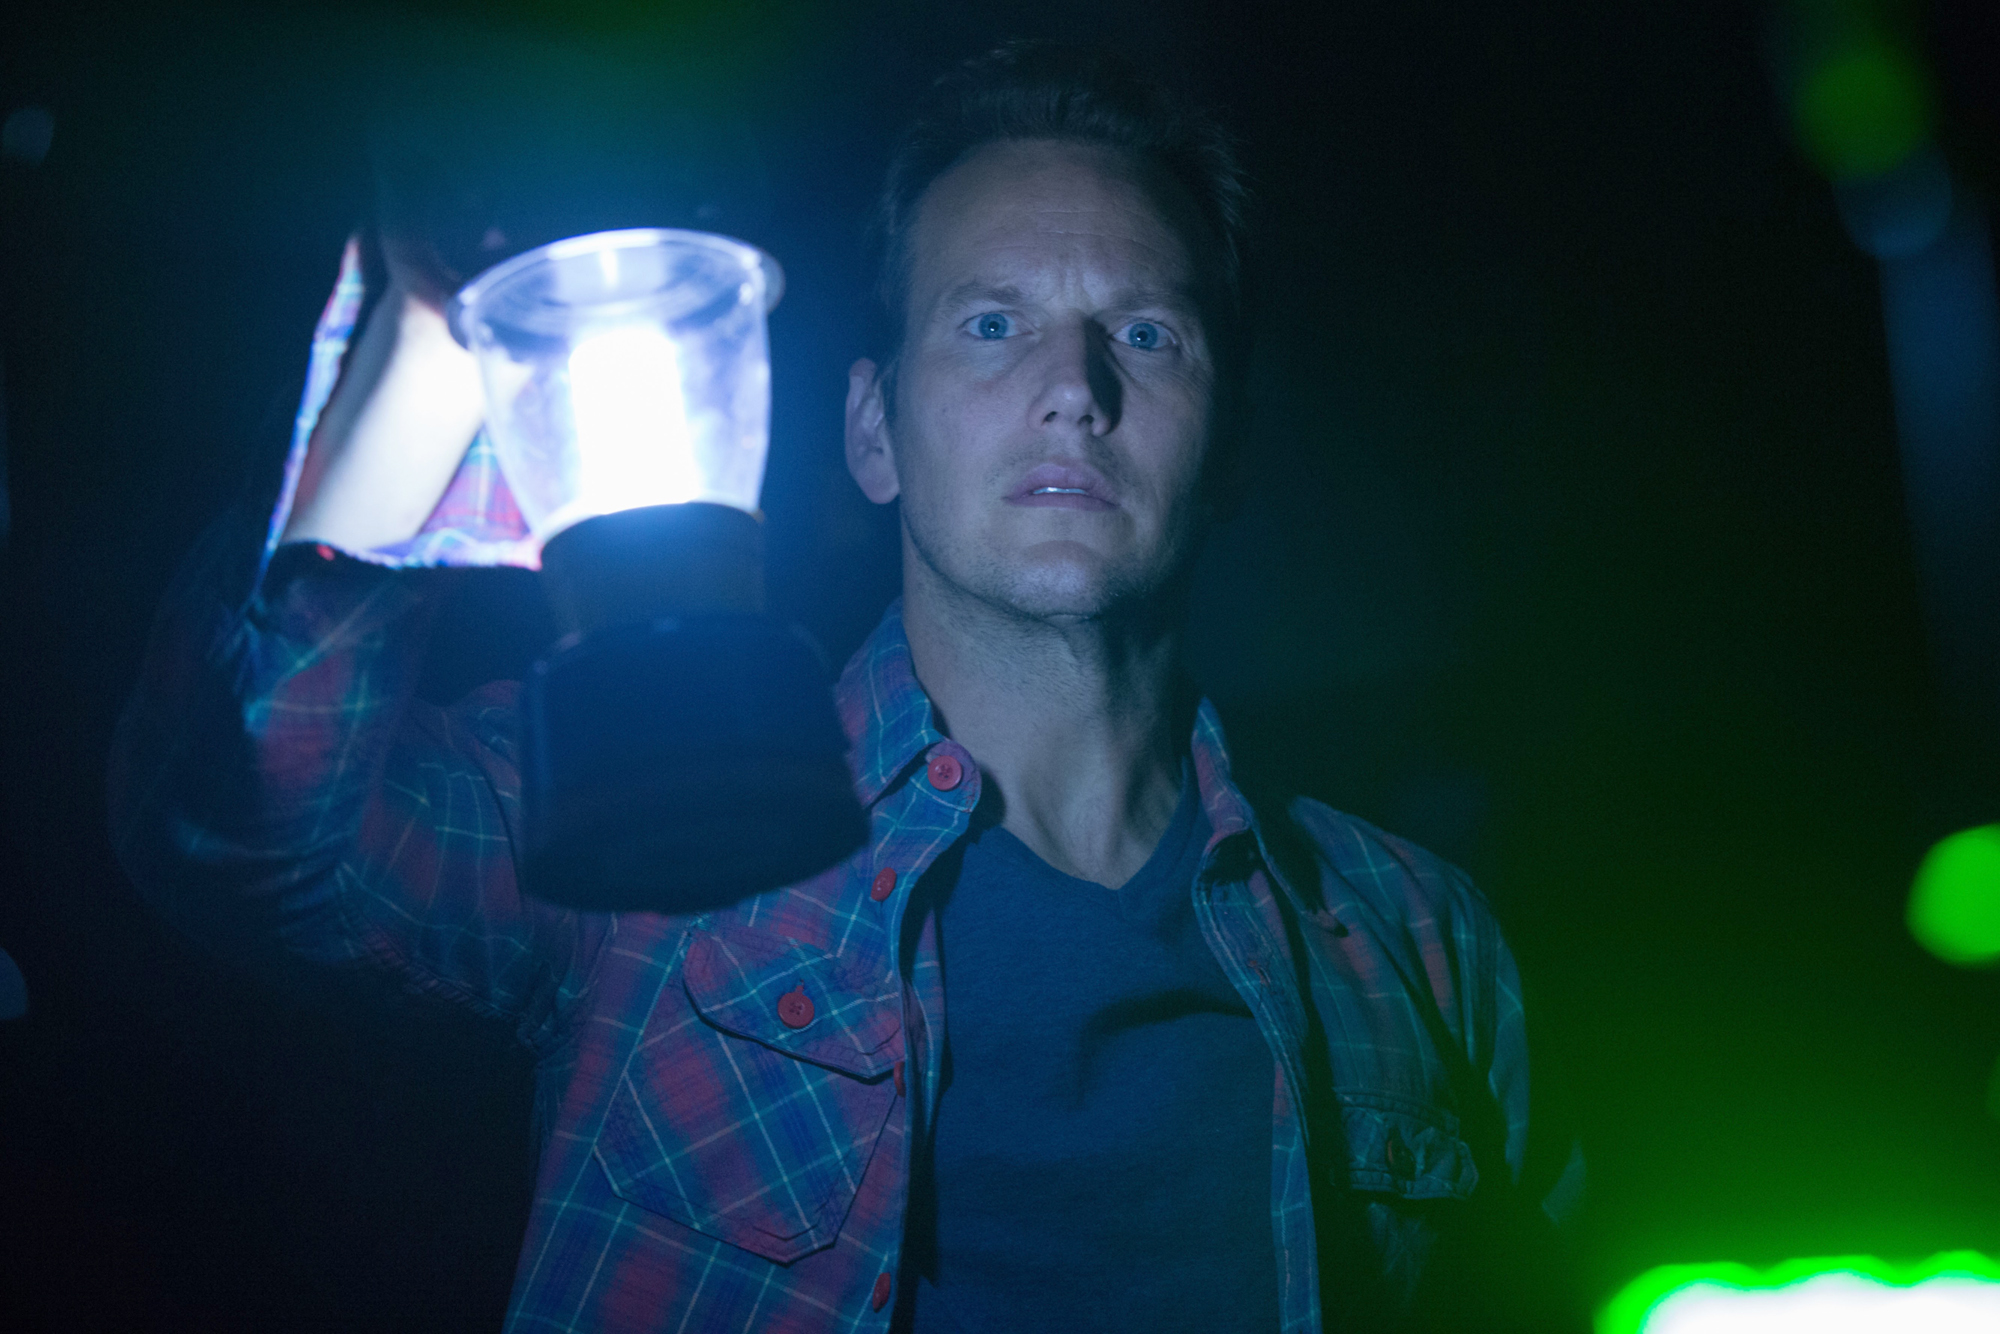 Insidious Chapter 2 Is An Insipid Pointless Flick